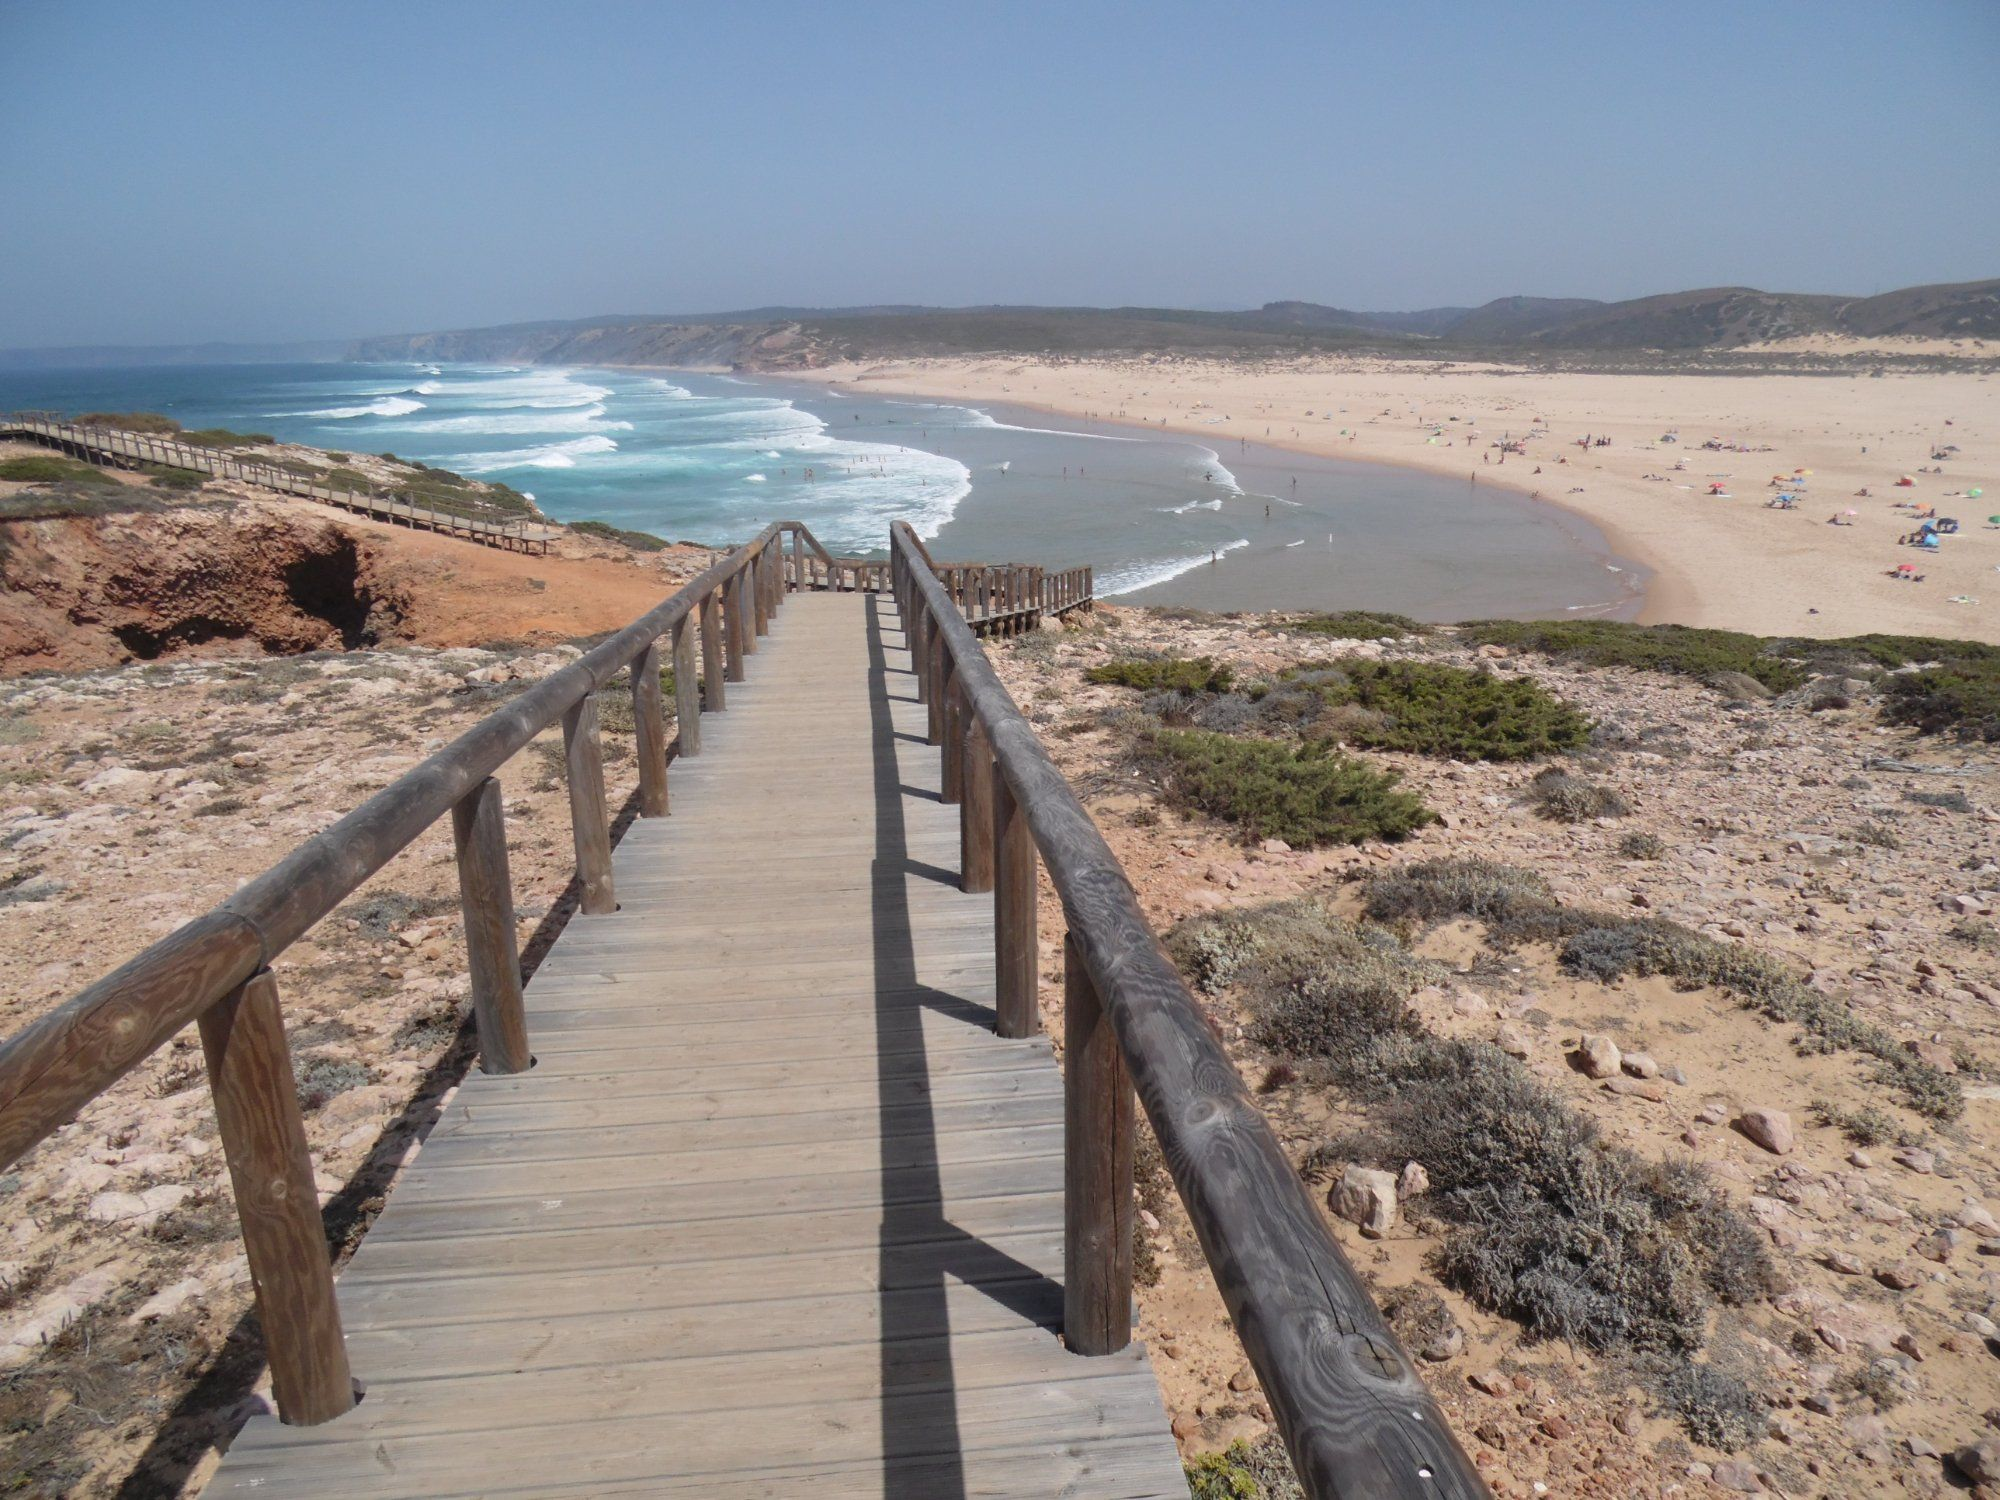 Bordeira Beach, Carrapateira: See 161 reviews, articles, and 145 photos of Bordeira Beach, ranked No.2 on TripAdvisor among 8 attractions in Carrapateira.